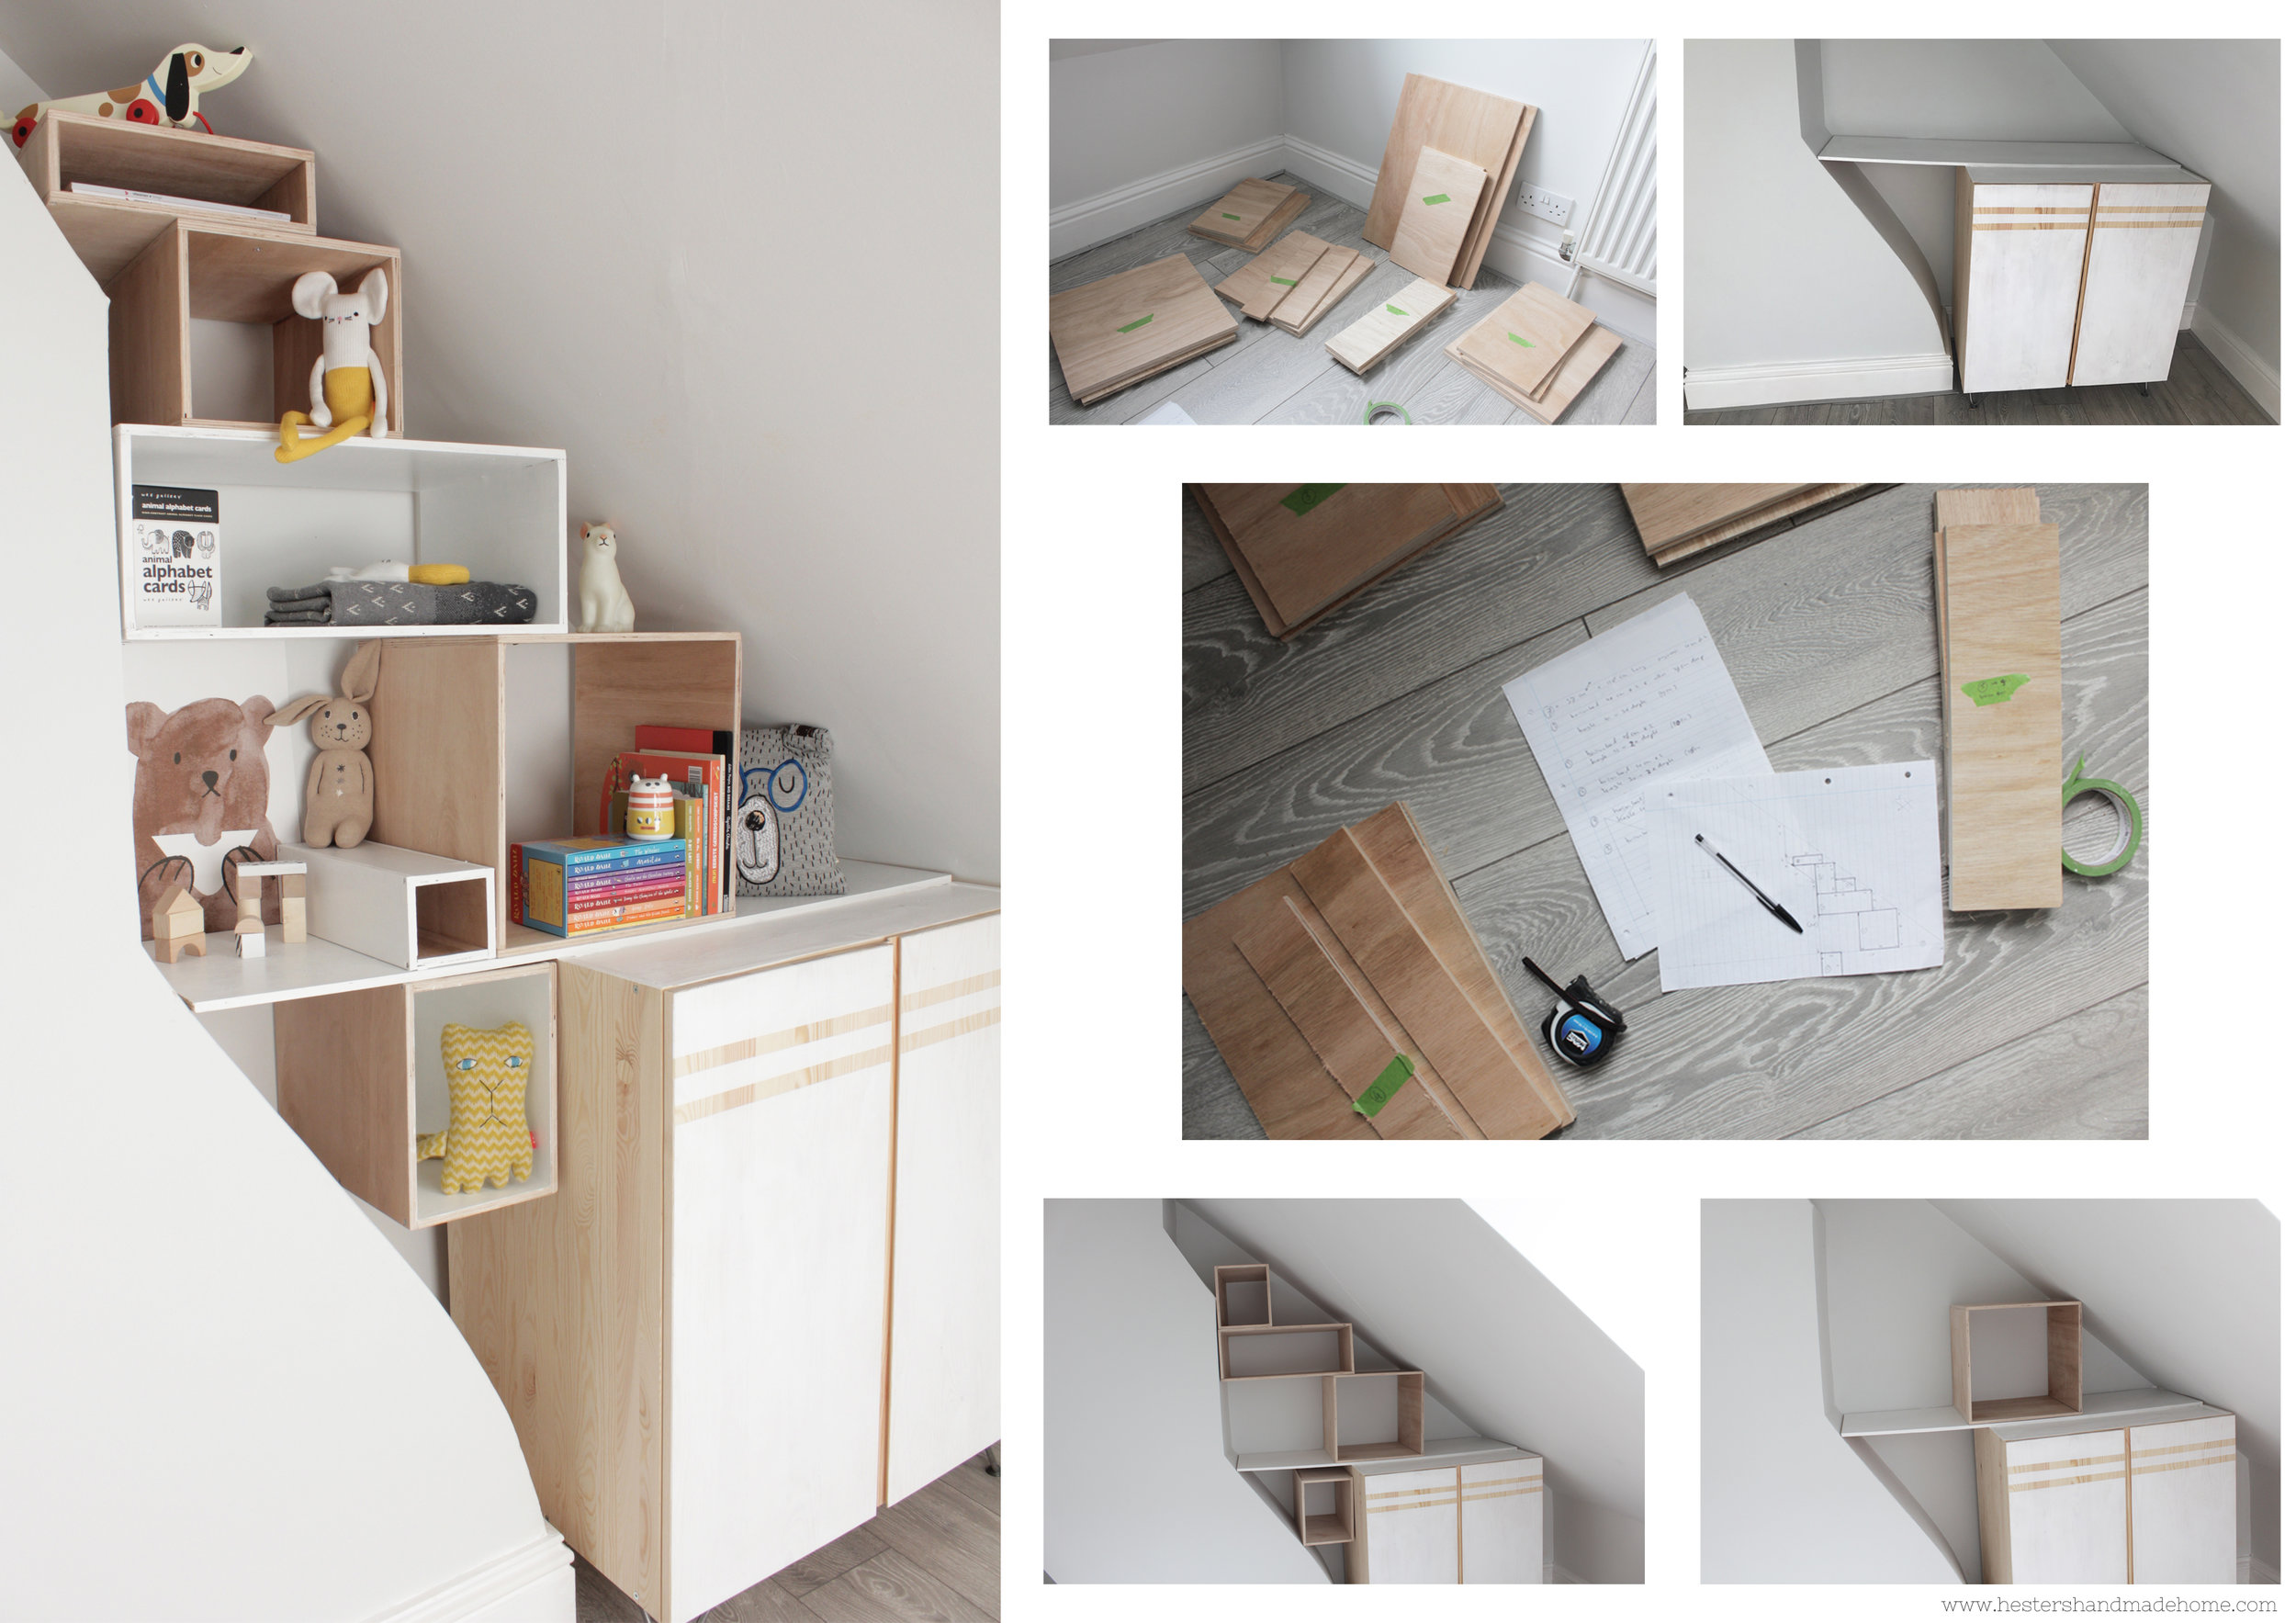 How to build an alcove bookcase by www.hestershandmadehome.com